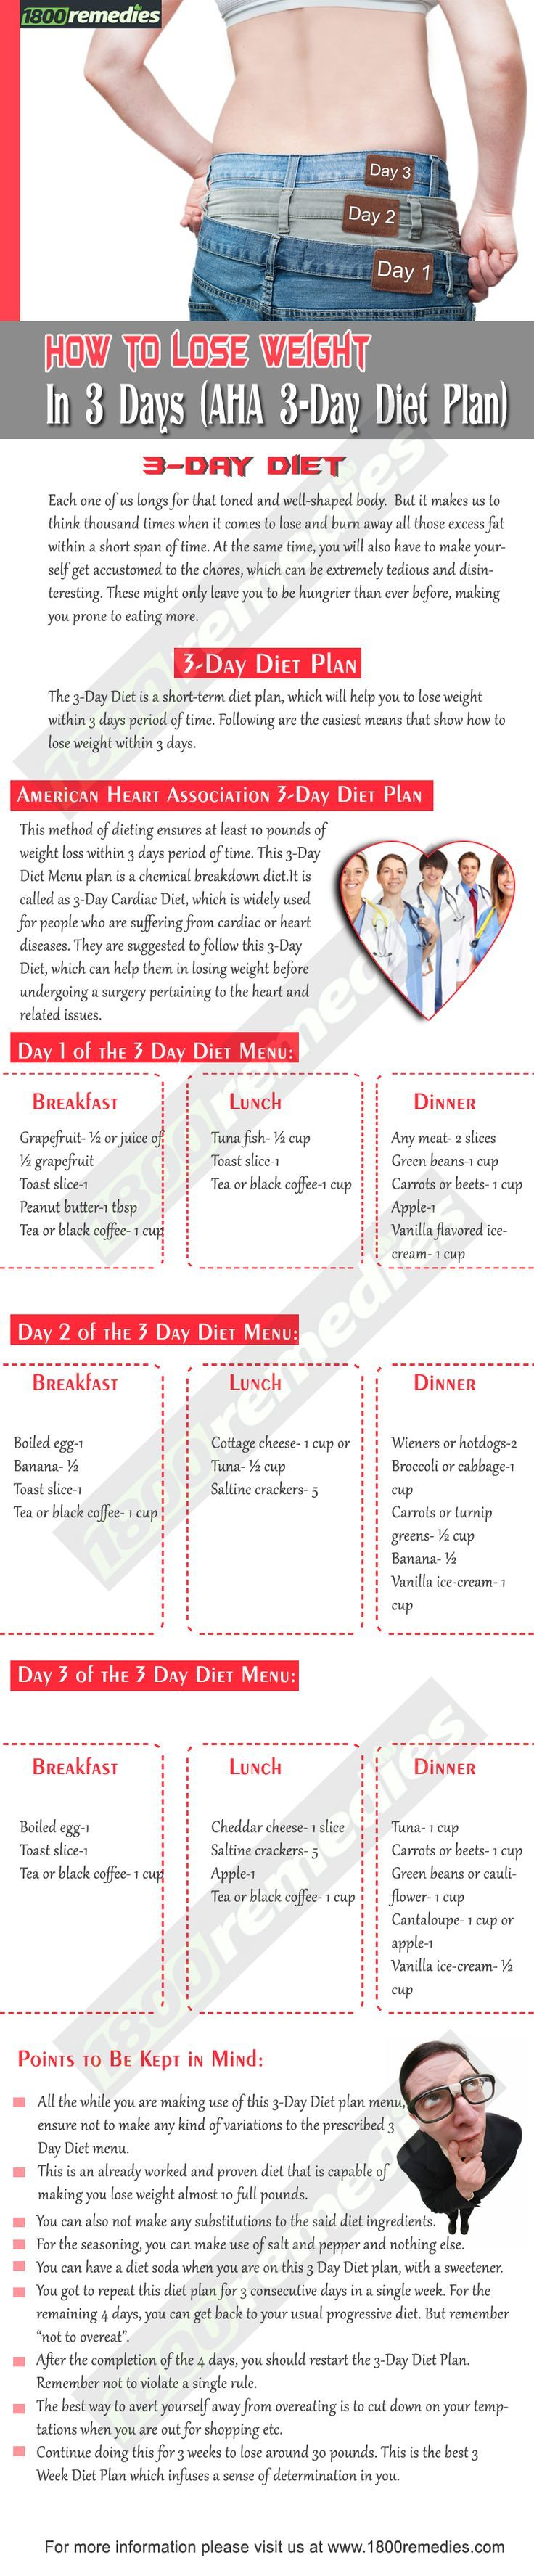 how to lose fat fast for women, shakes for weight loss, losing the belly fat - The 3-Day Diet is a short-term diet plan, which will help you to lose weight within 3 days period of time. Following are the easiest means that show how to lose weight within 3 days.